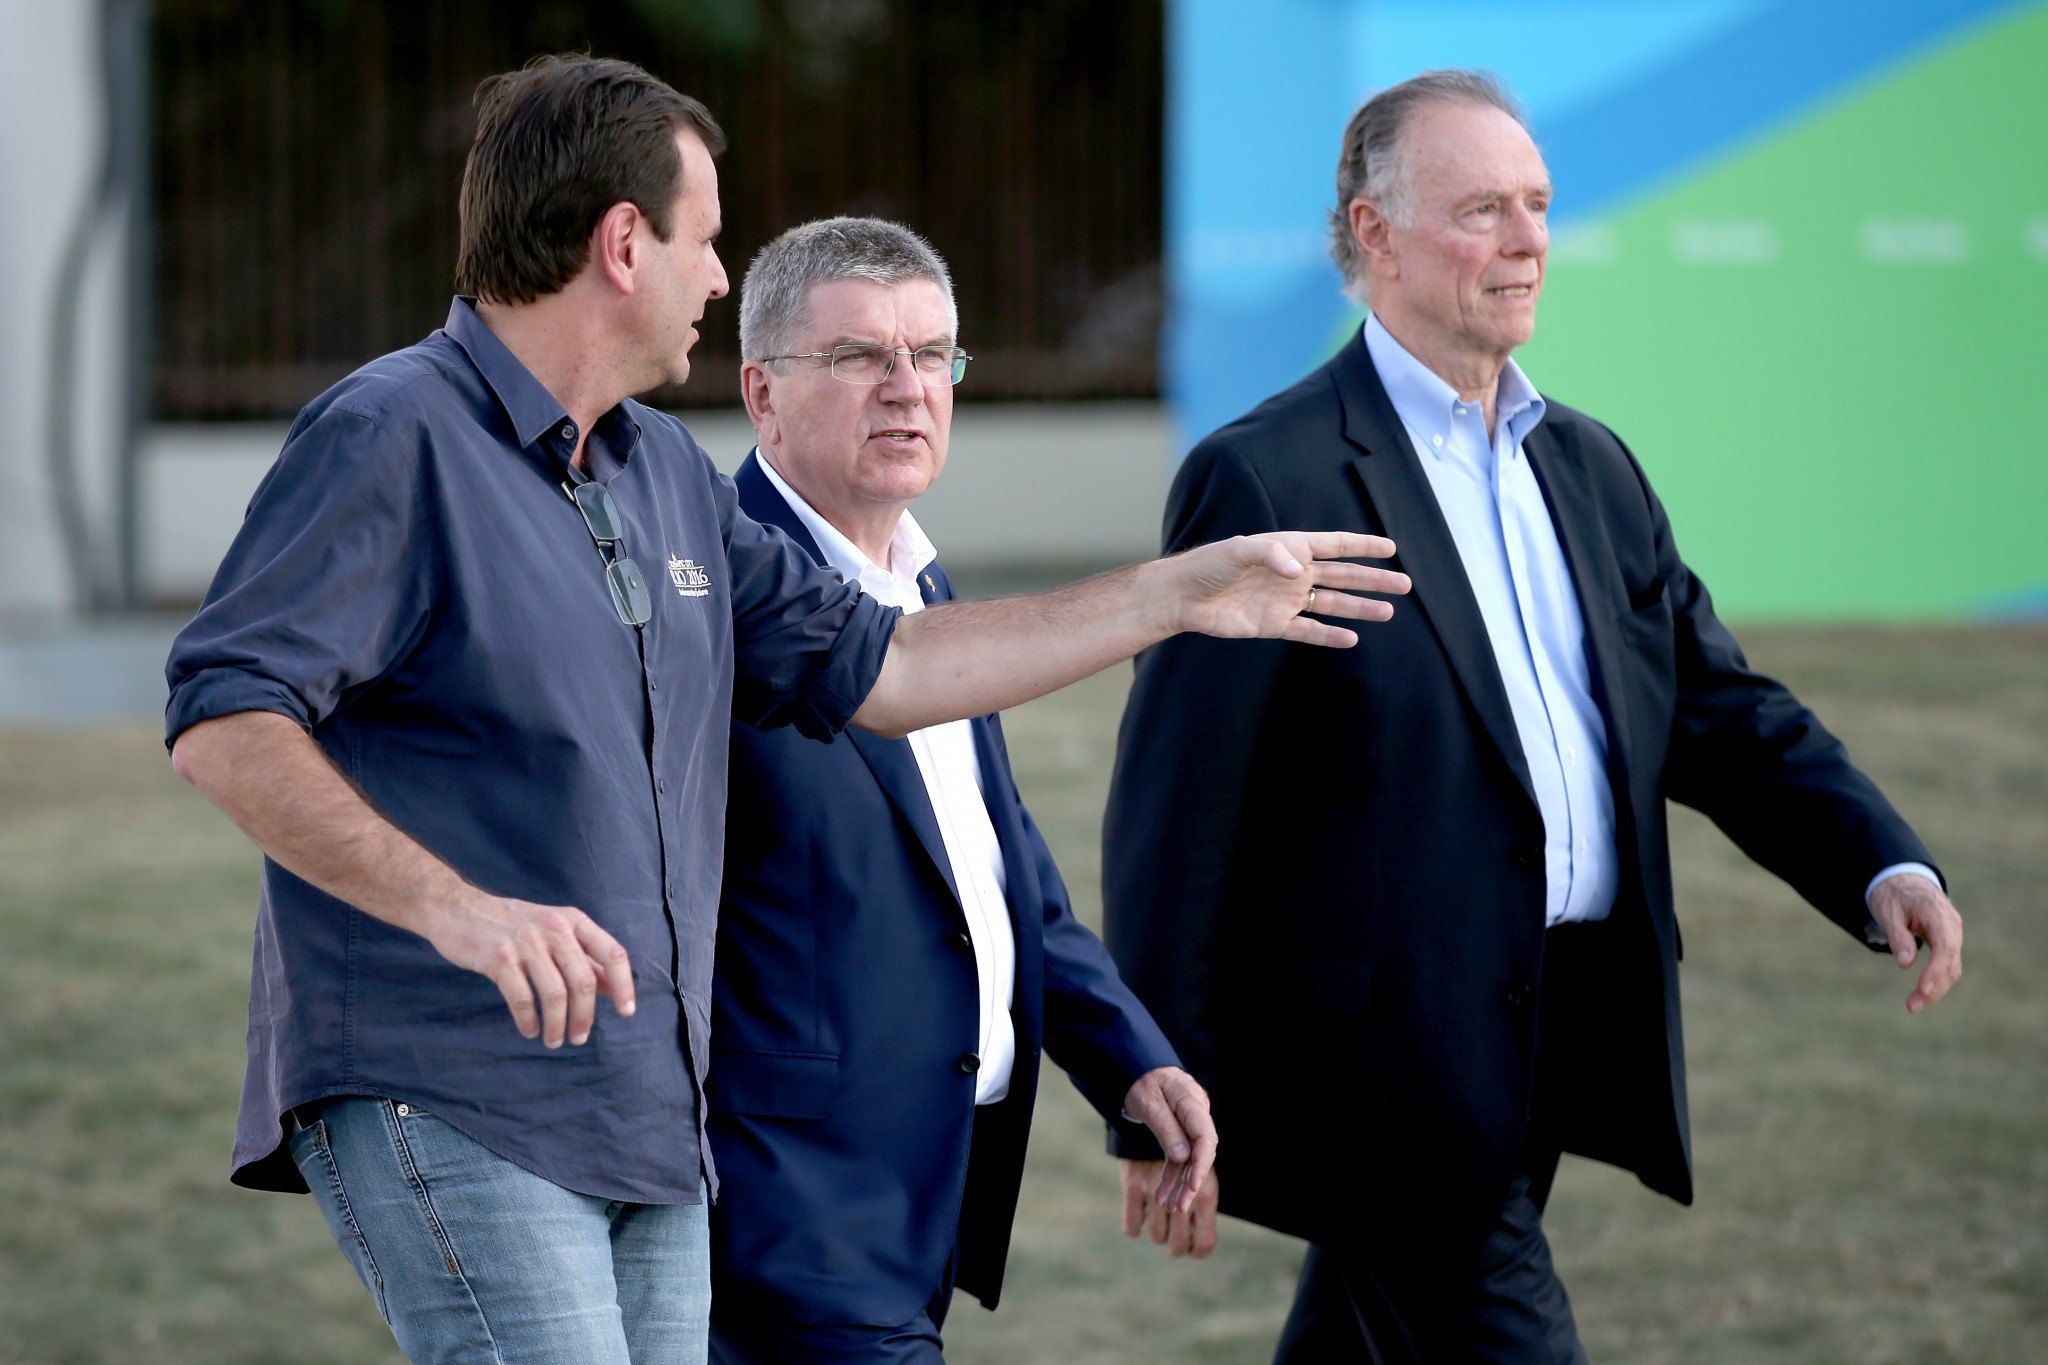 Former Rio de Janeiro Mayor Eduardo Paes, left, alongside IOC President Thomas Bach, centre, and Rio 2016 chief Carlos Nuzman, right, is among officials linked to corruption related to the Olympics ©Getty Images